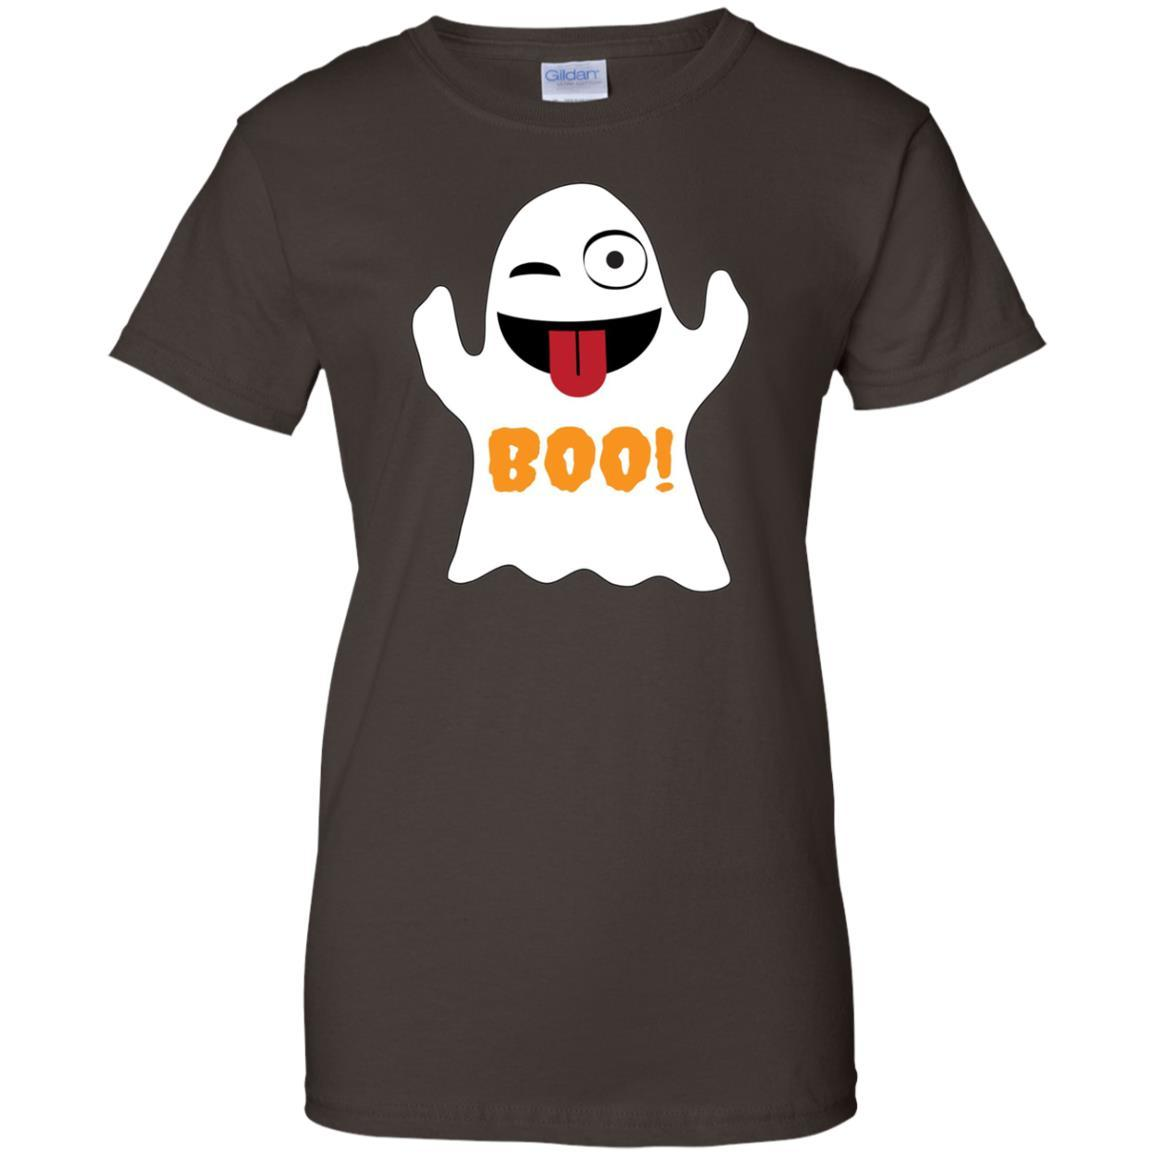 Emoji T Shirt Halloween Ghost Emoji Tongue Out Boo!